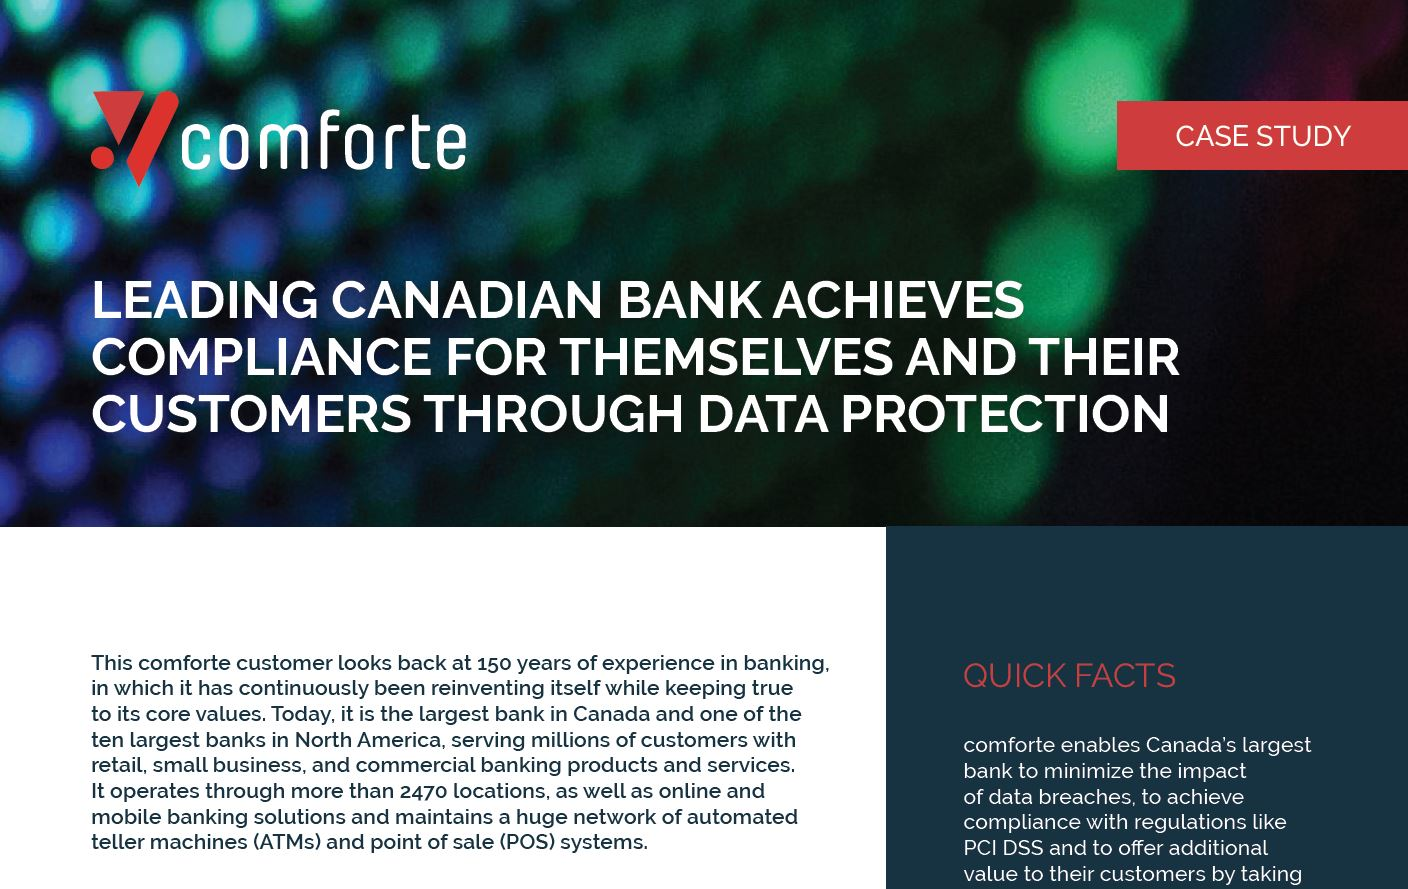 Leading Canadian bank achieves compliance for themselves and their customers